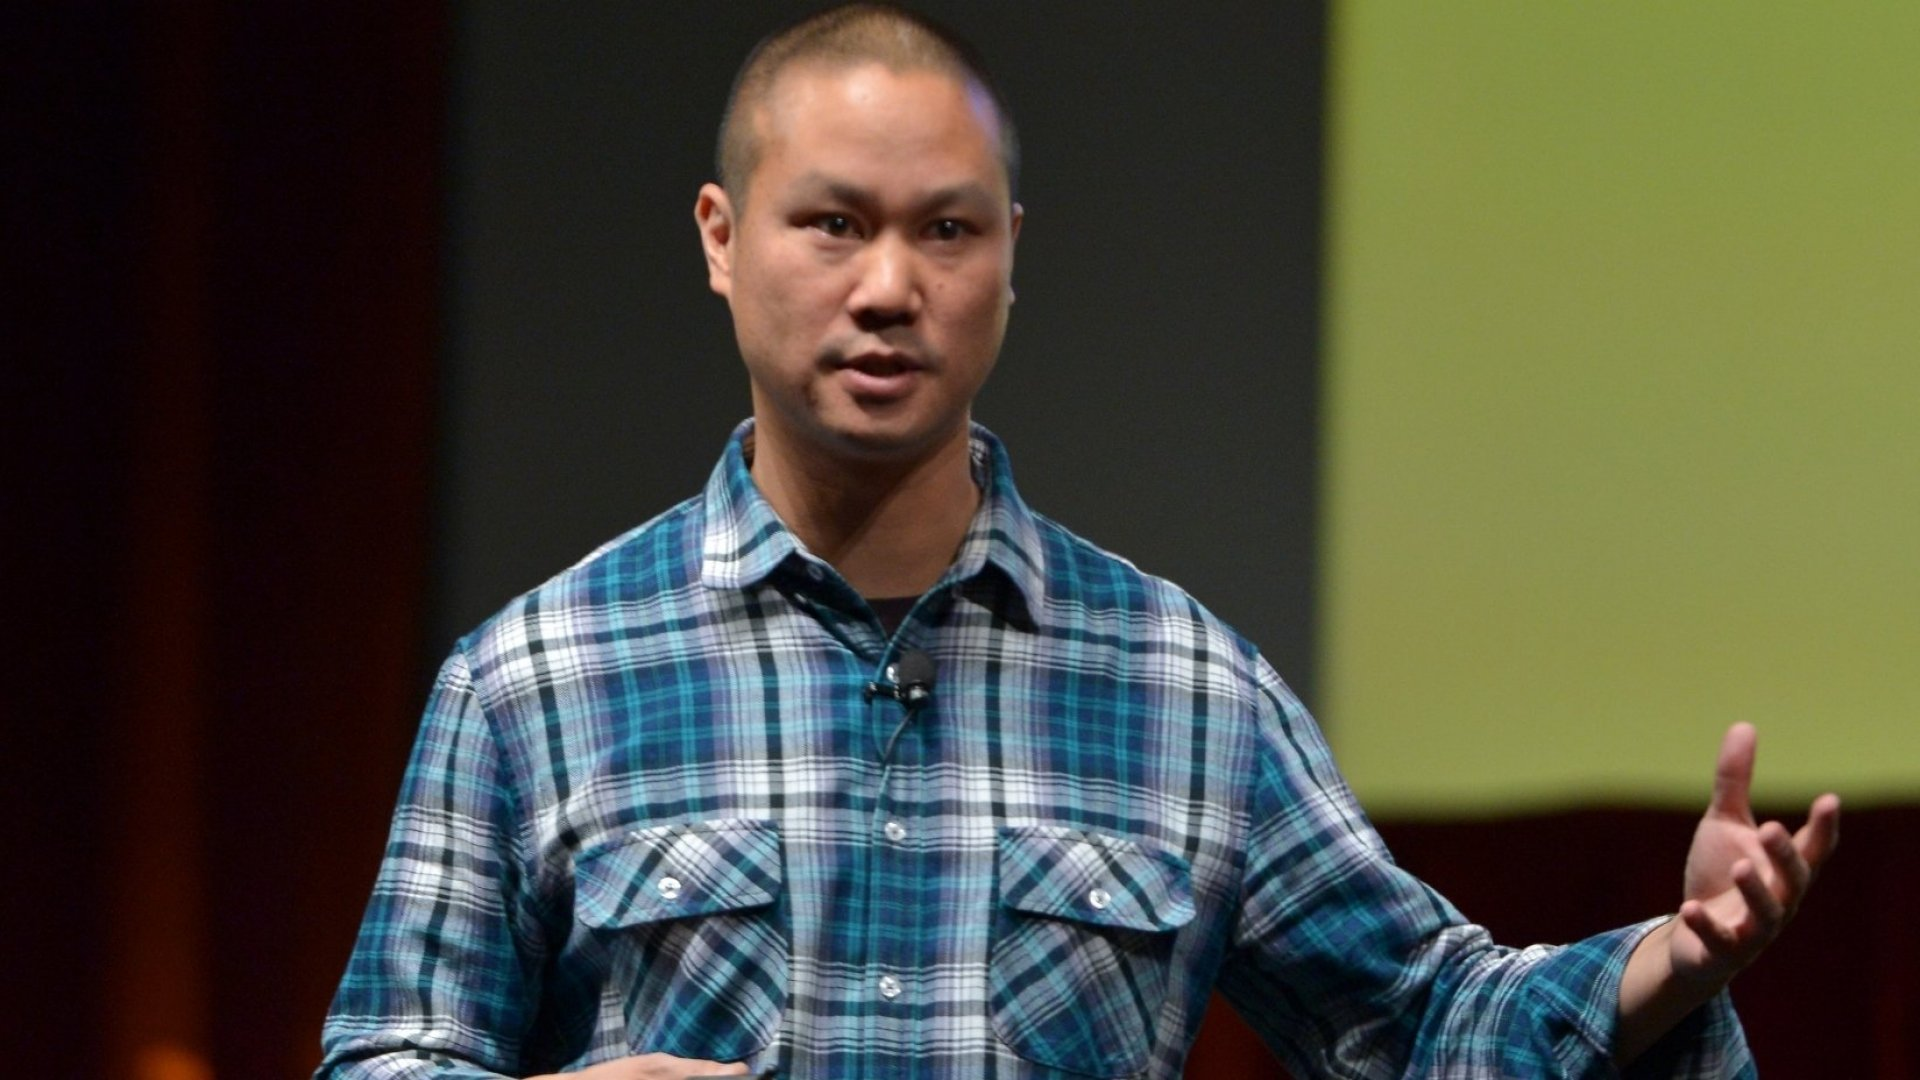 The 4 Books Zappos CEO Tony Hsieh Thinks Everyone Should Read